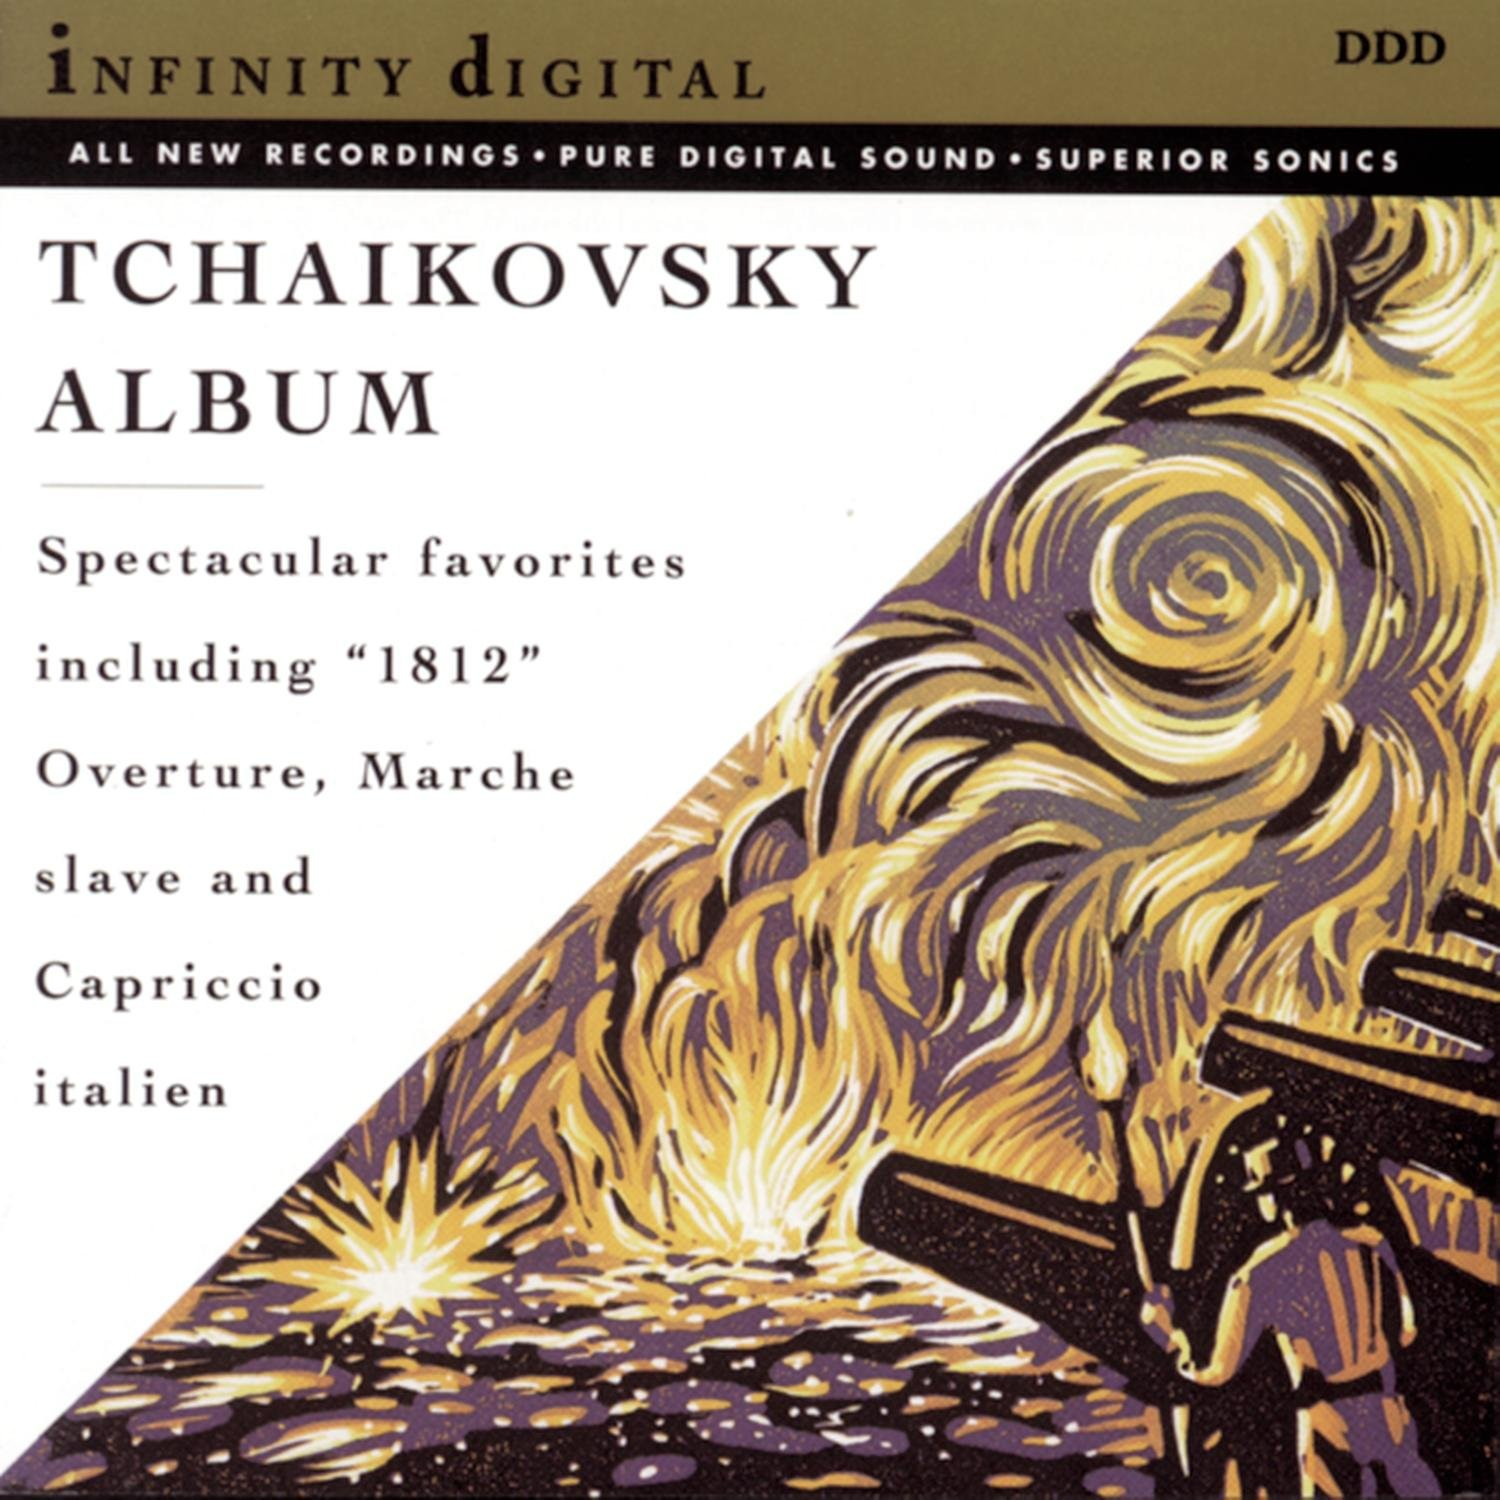 The Tchaikovsky Album